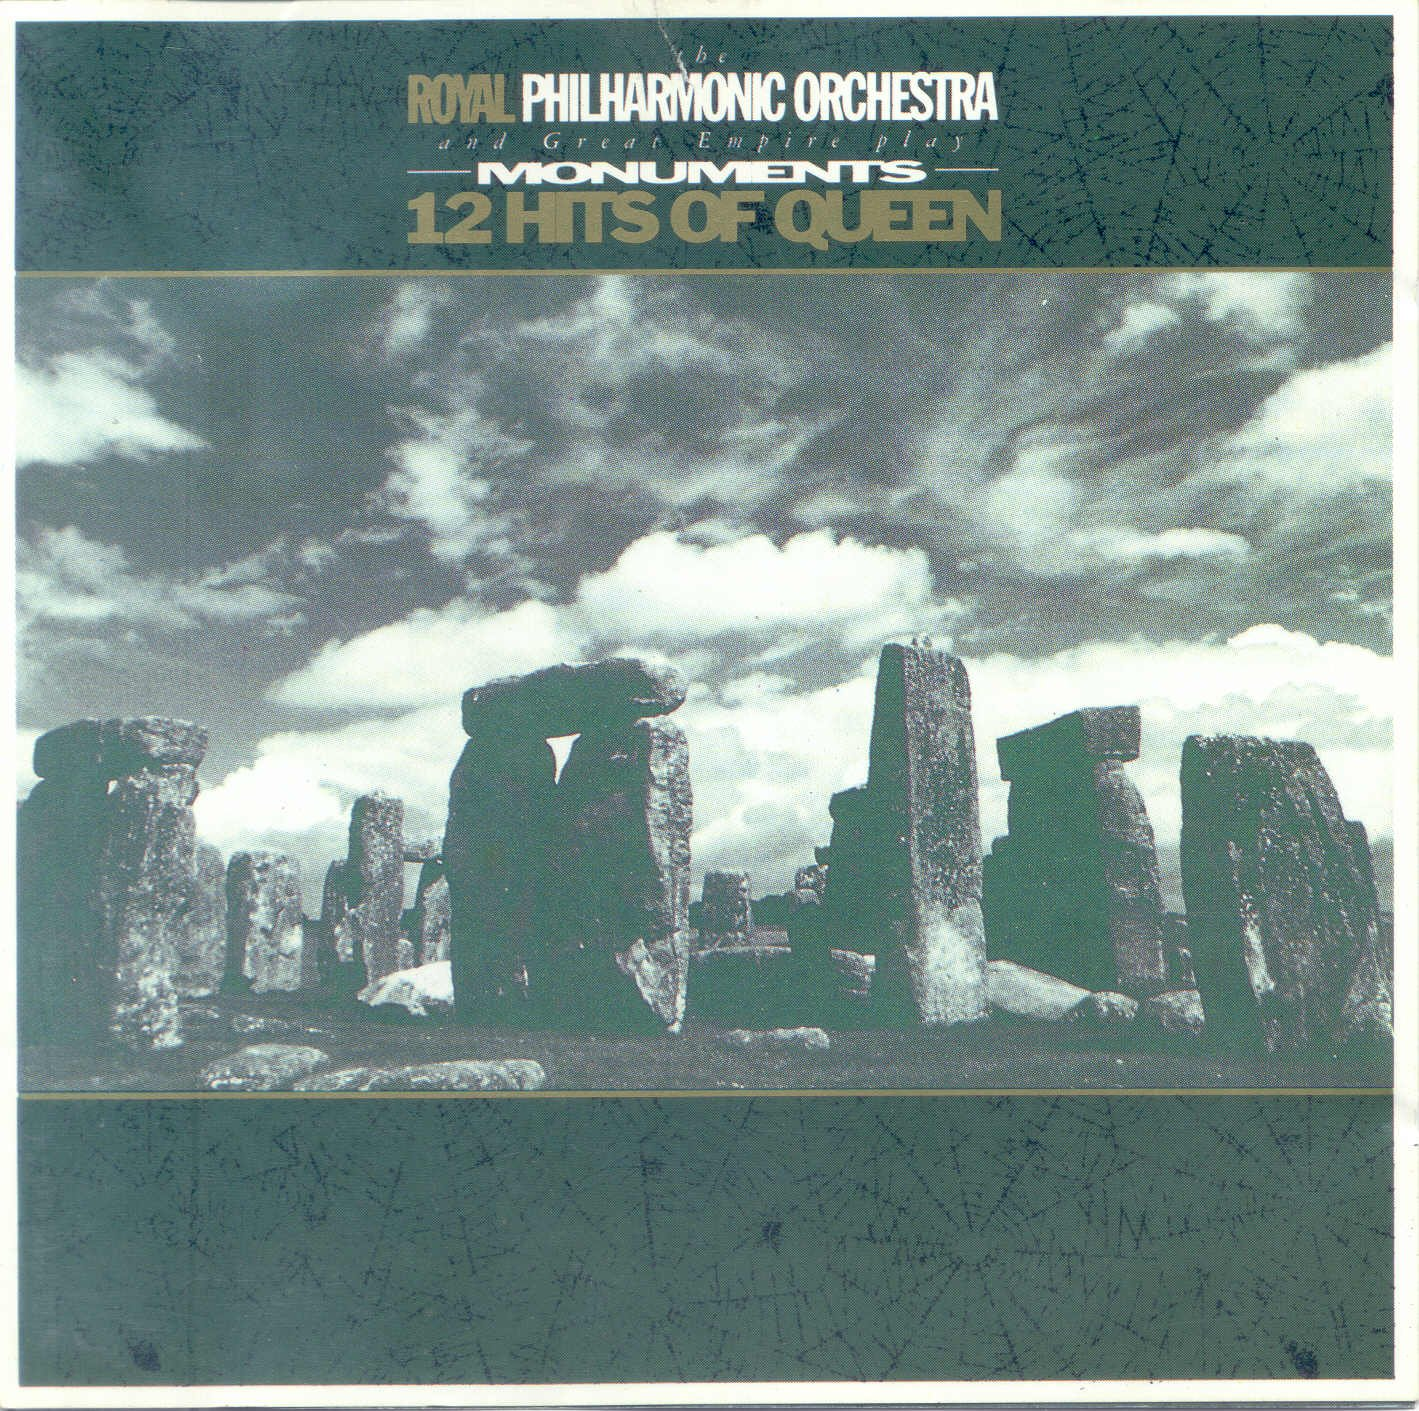 Various Artists - The Royal Philarmonic Orchestra And Great Empire Play Monument - 12 Hits Of Queen CD (album) cover